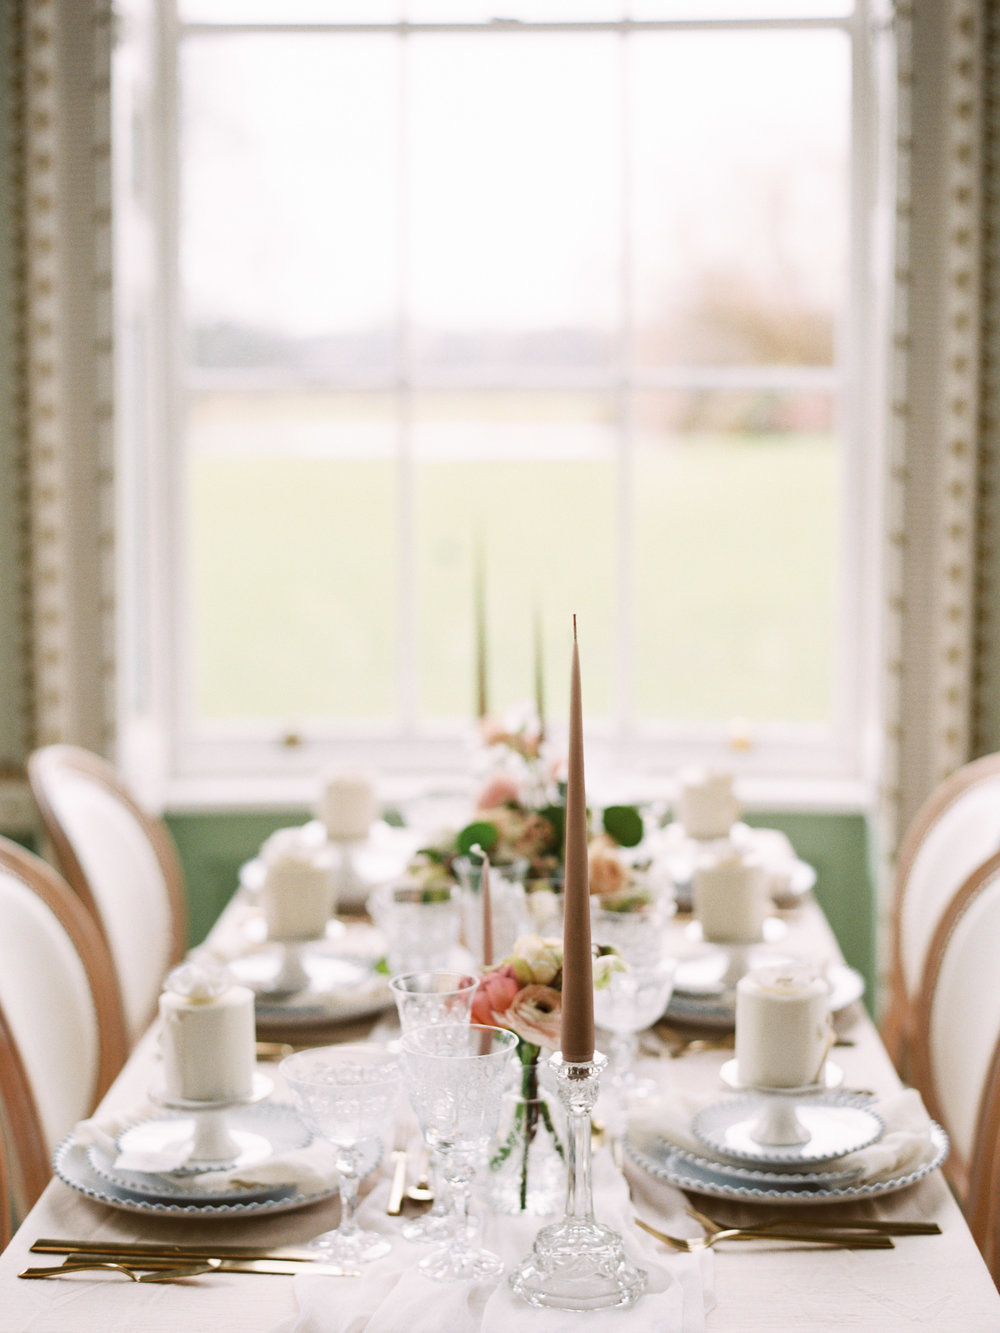 The Timeless Stylist-Elegant and Romantic Wedding Styling-Neutral Palette Wedding Tablescape-Stately Home Wedding Venue